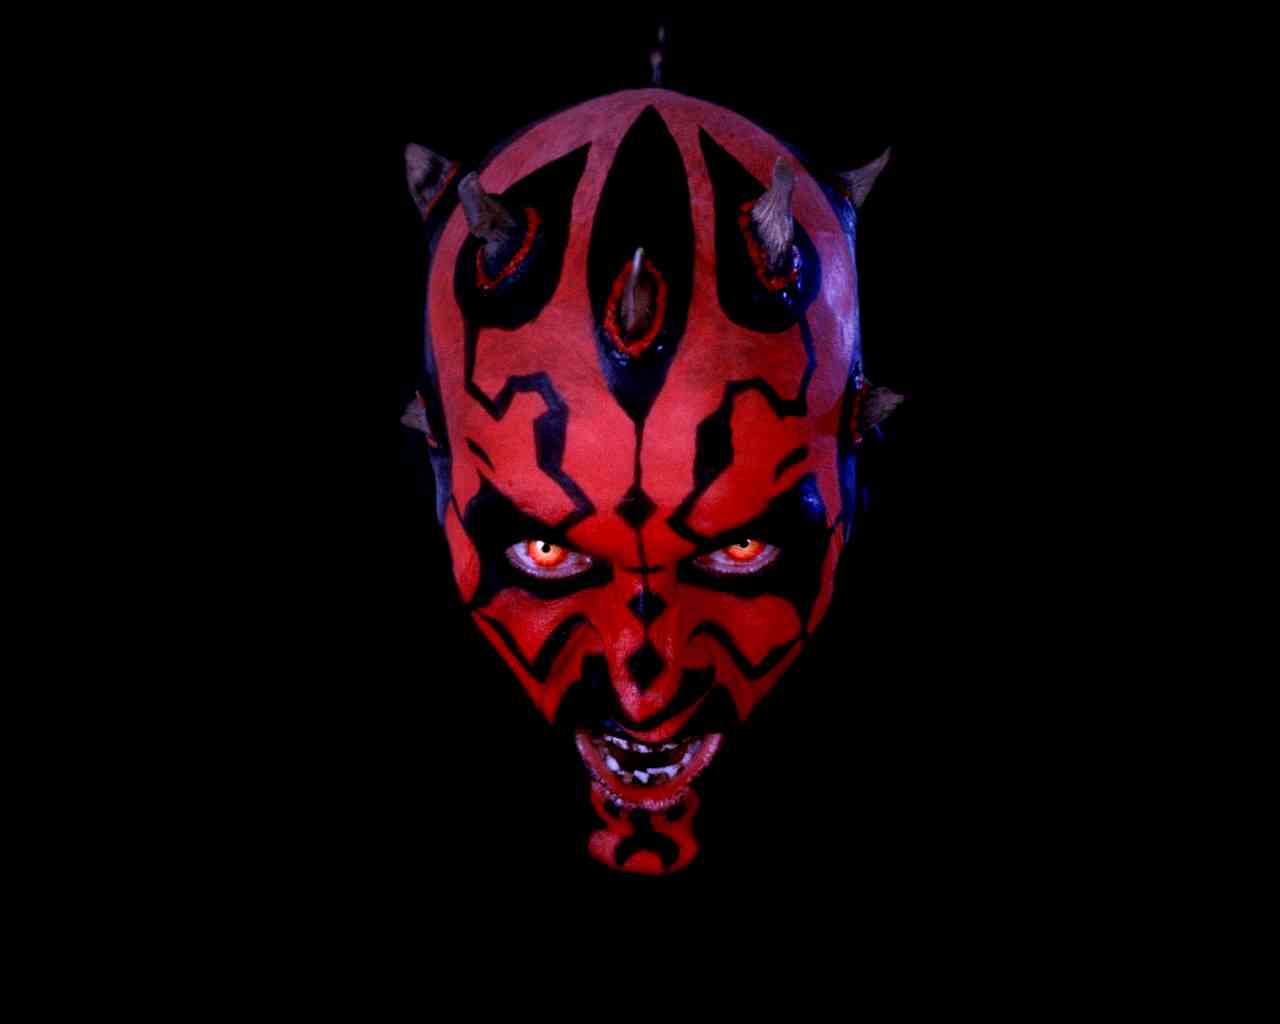 Darth Maul Star Wars Wallpapers High Quality And 1280x1024PX